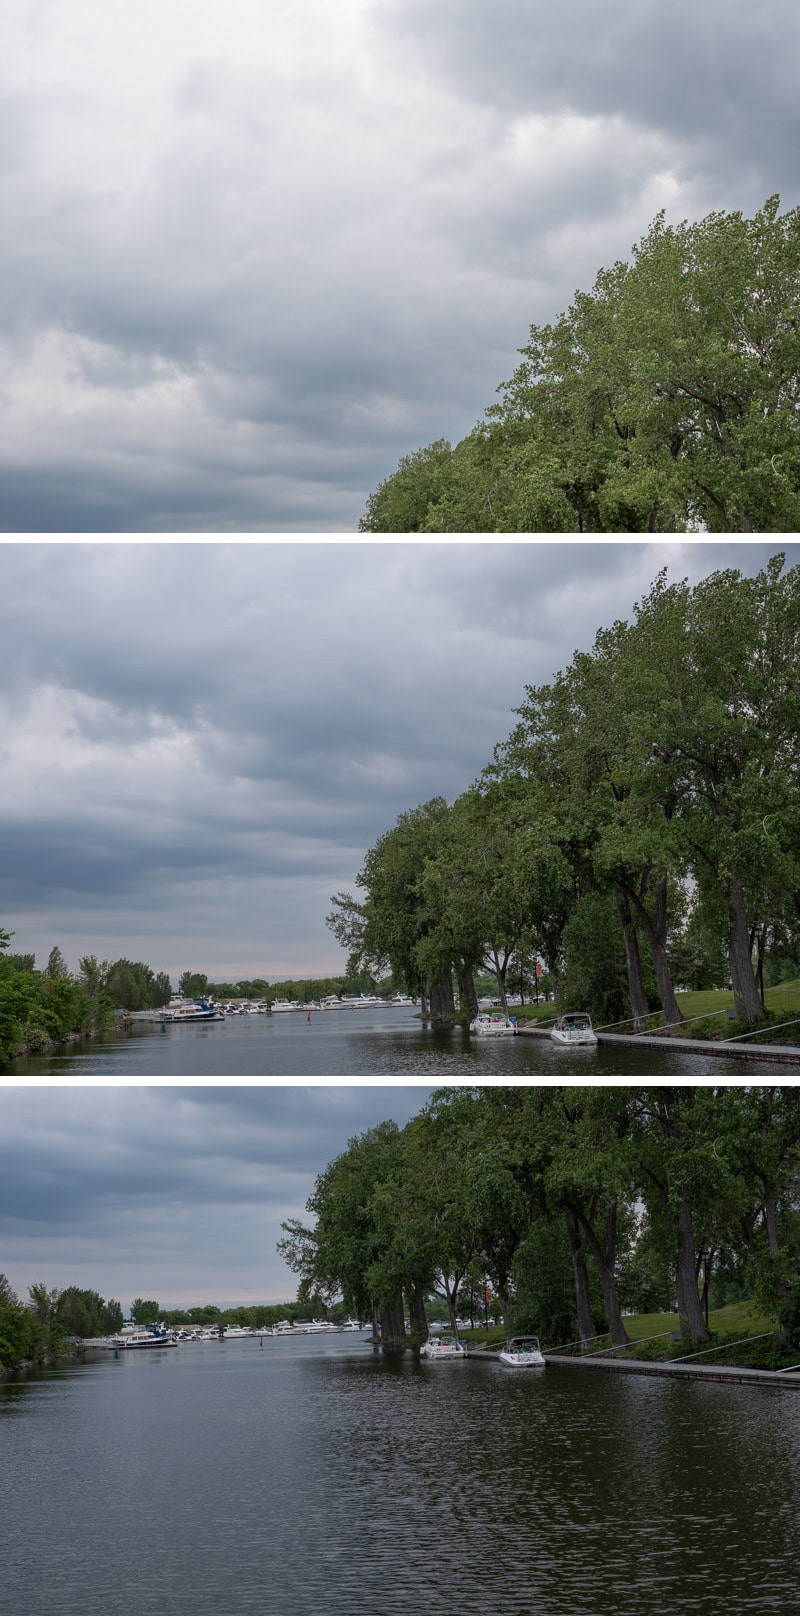 Panoramic Photography: How to Shoot Landscape Panoramas 8